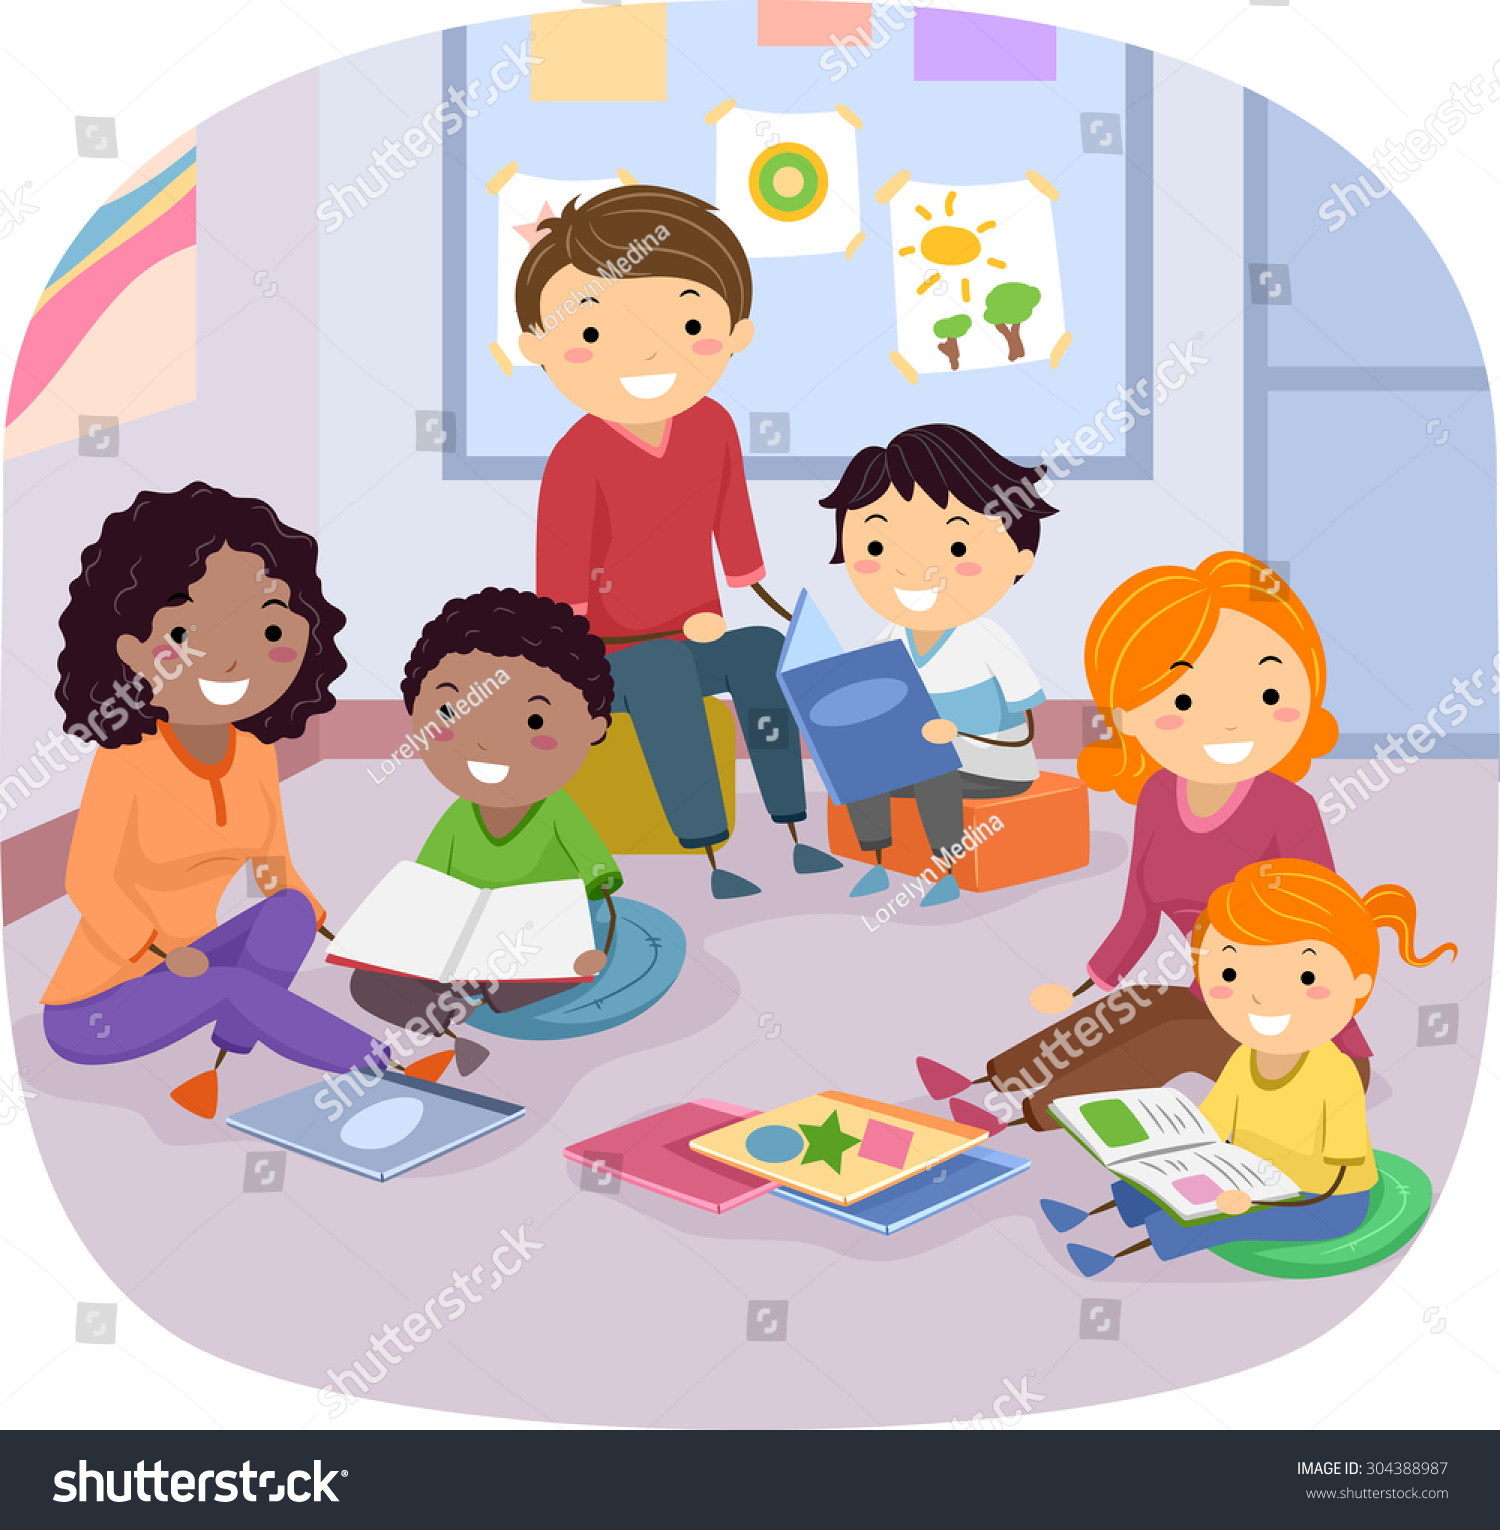 clipart family reading together - photo #19